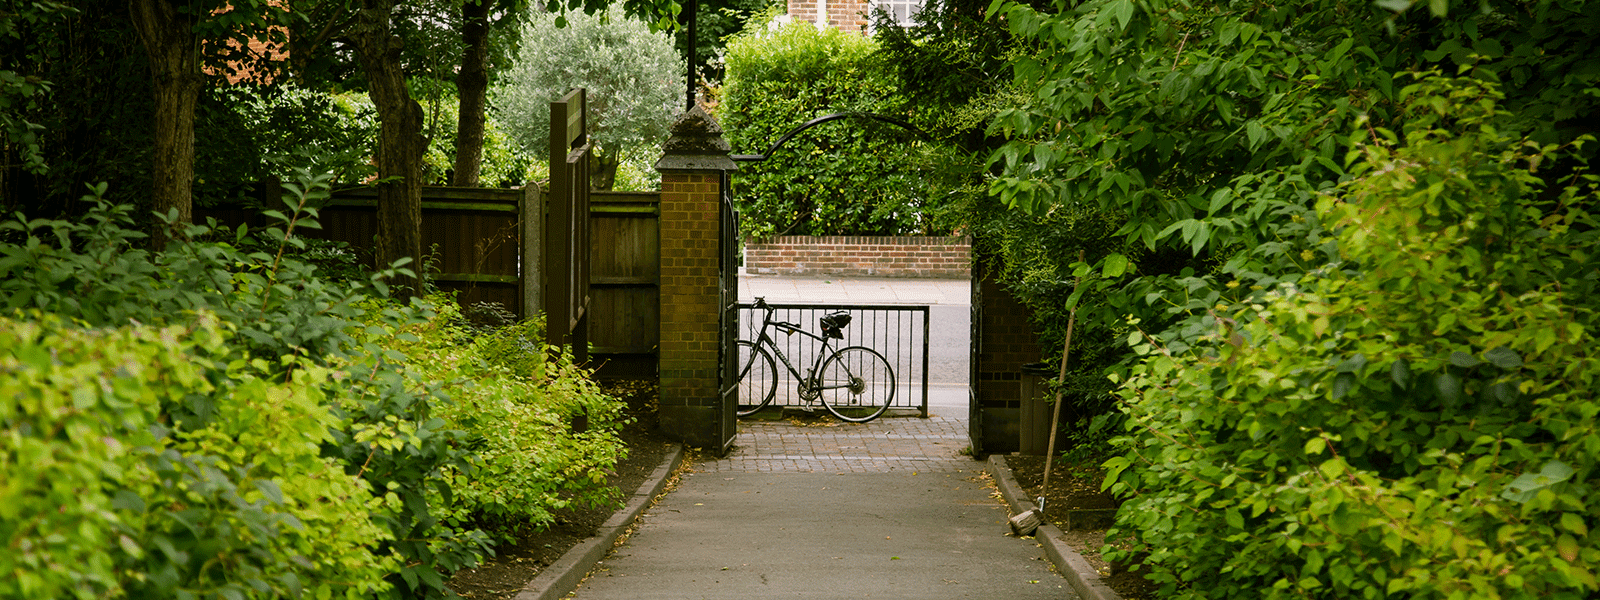 bicycle at the entrance of a lush garden and iron gate